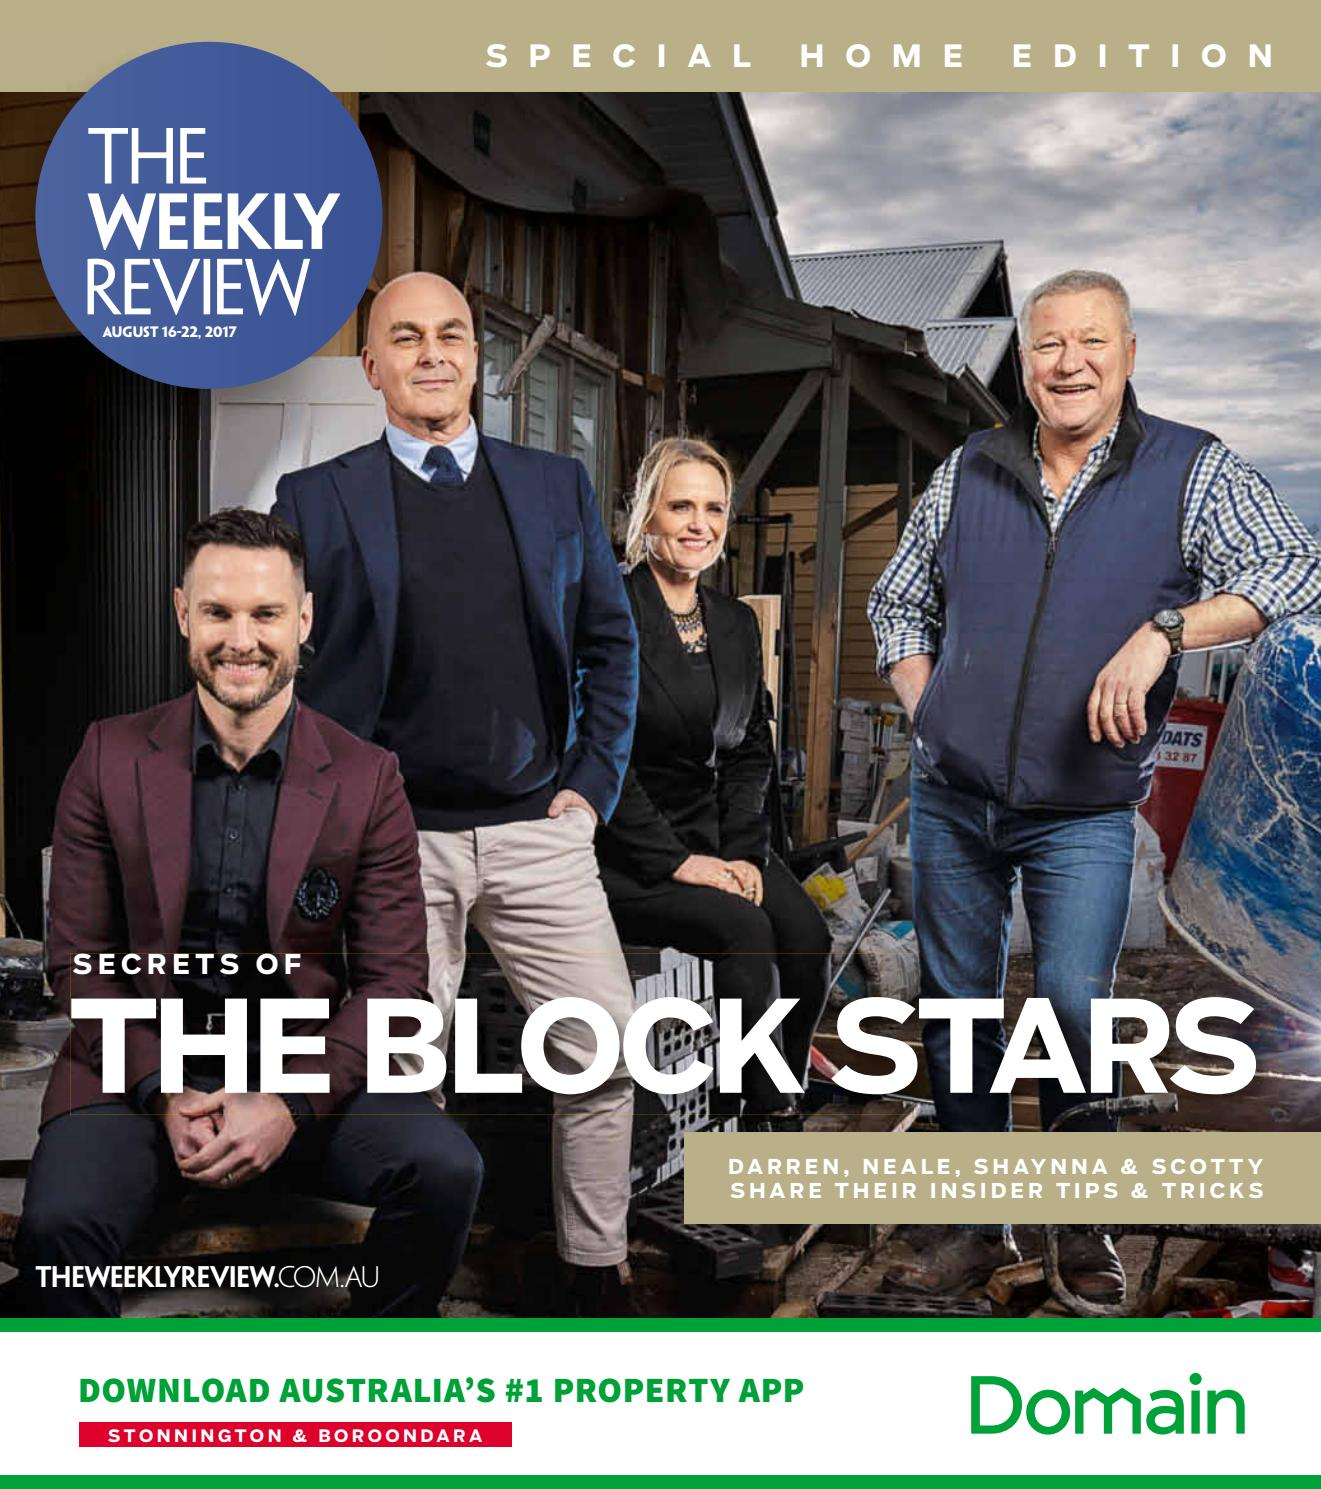 The weekly review stonnington boroondara by the weekly review the weekly review stonnington boroondara by the weekly review issuu fandeluxe Choice Image